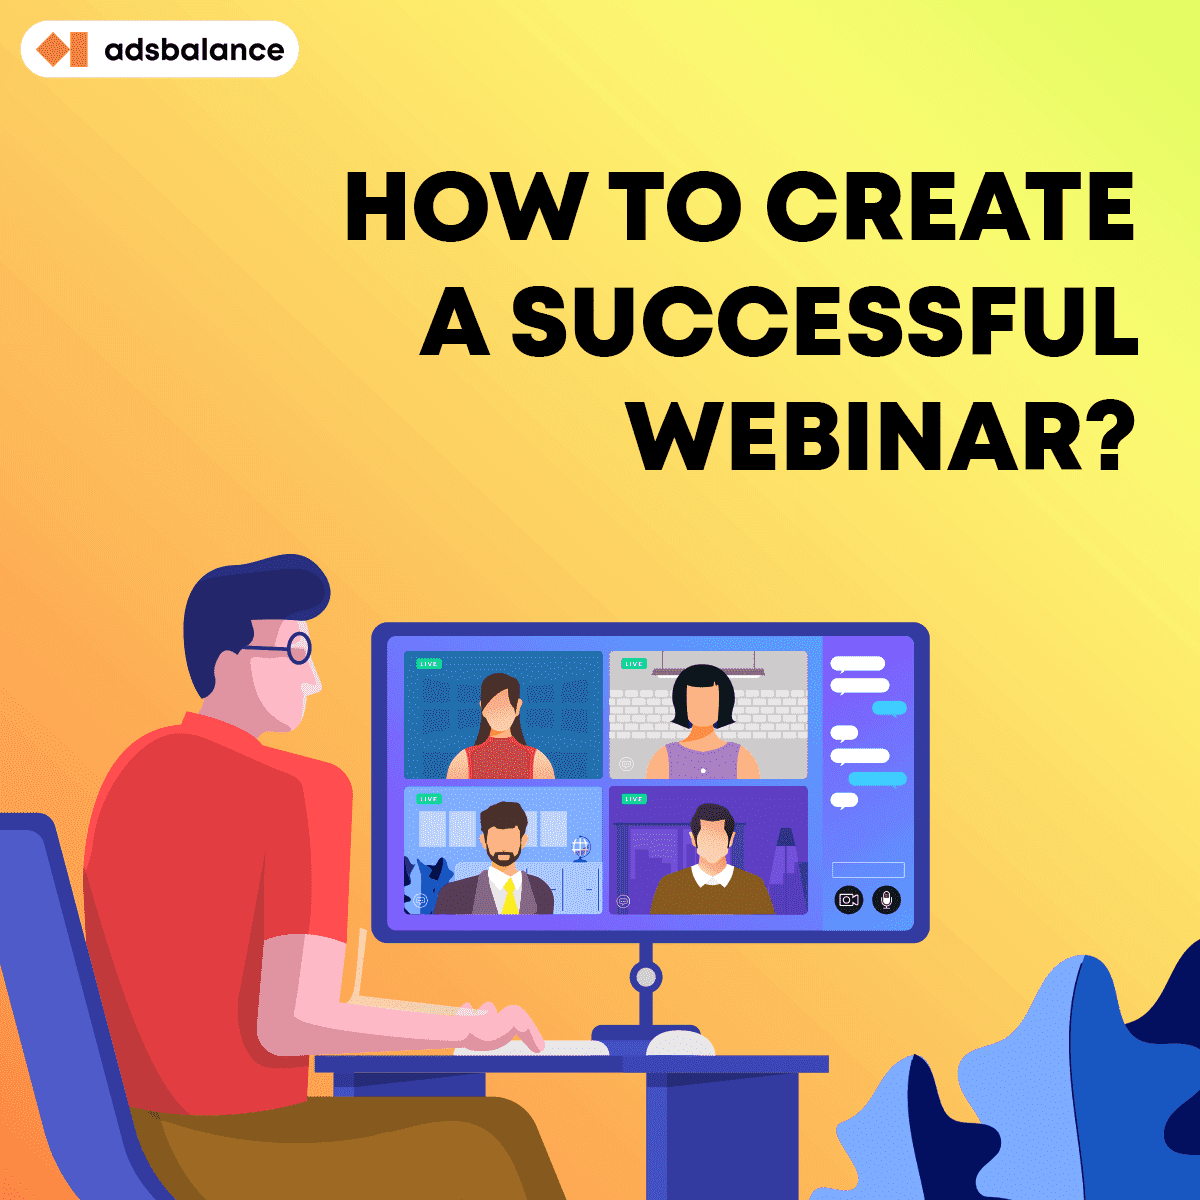 How To Create A Successful Webinar and How It Will Add to Your Brand Image